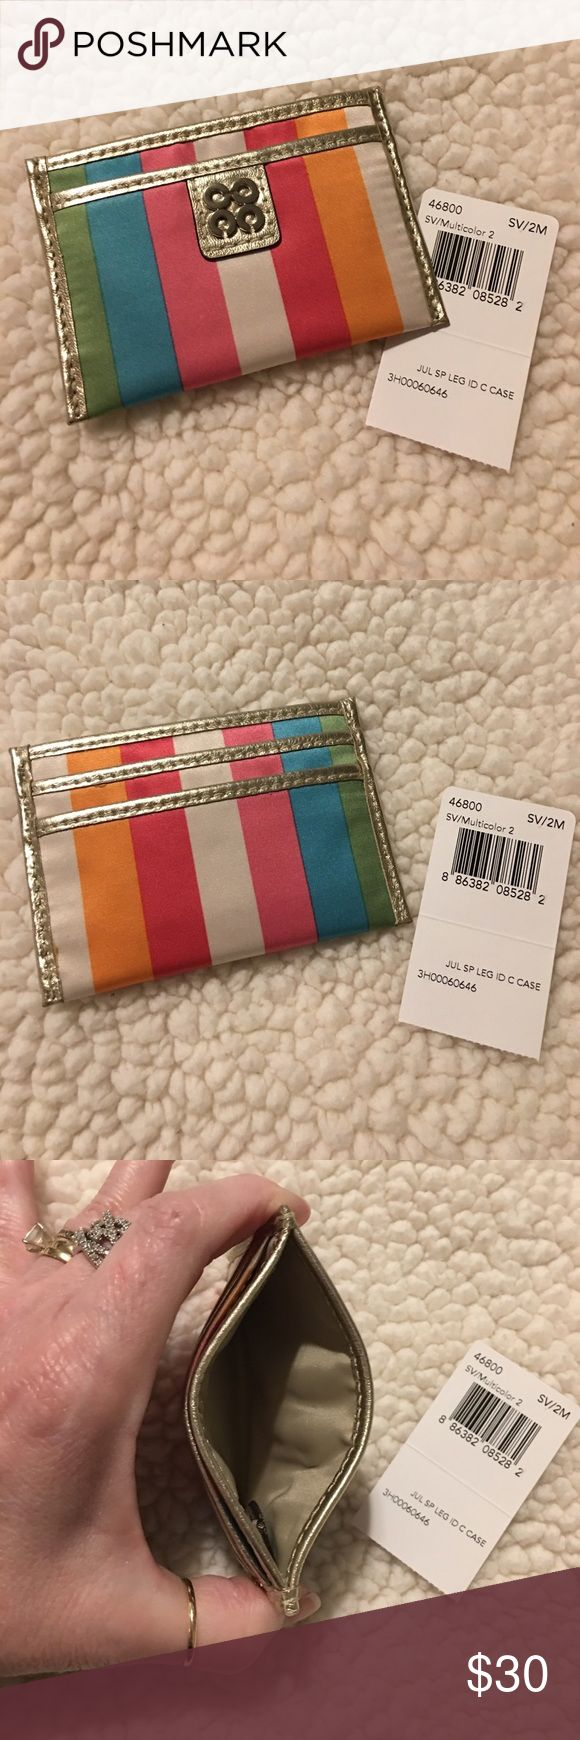 🌸💋Coach Legacy Stripe ID Credit Card Case🌸 NEW Authentic COACH Julia Legacy Stripe ID Credit Card Case Coach Accessories Key & Card Holders